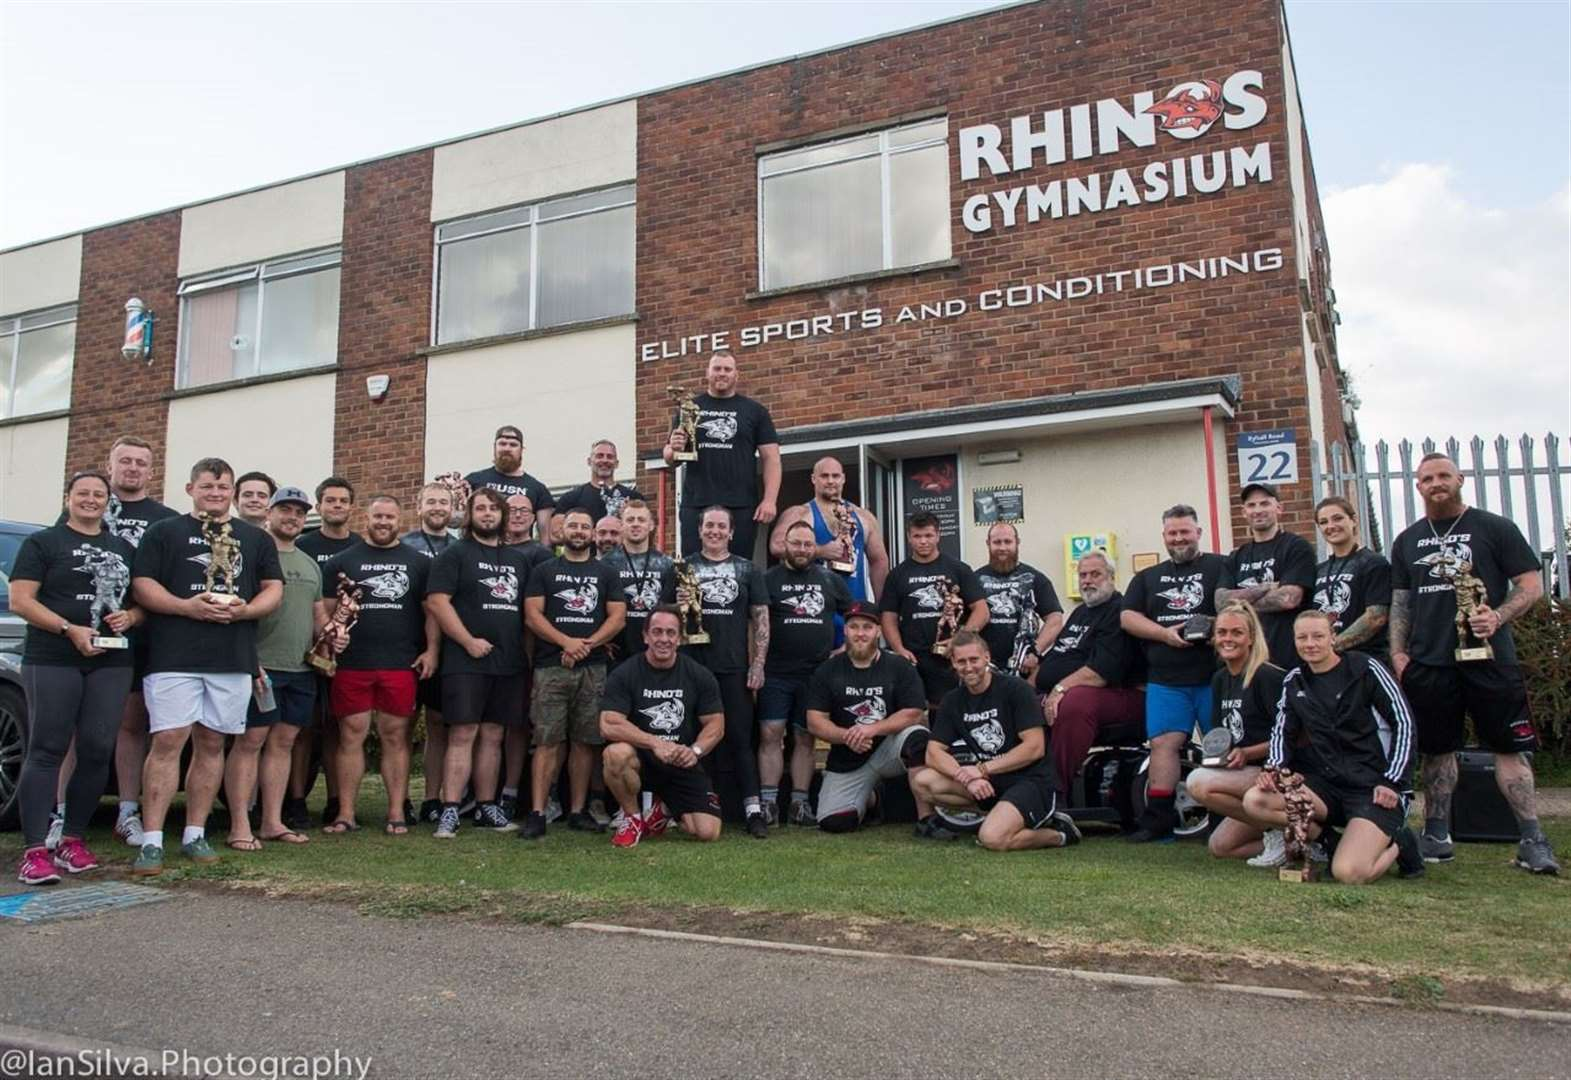 Rhino's Gym in Stamford staged its first Open Strongman Competition